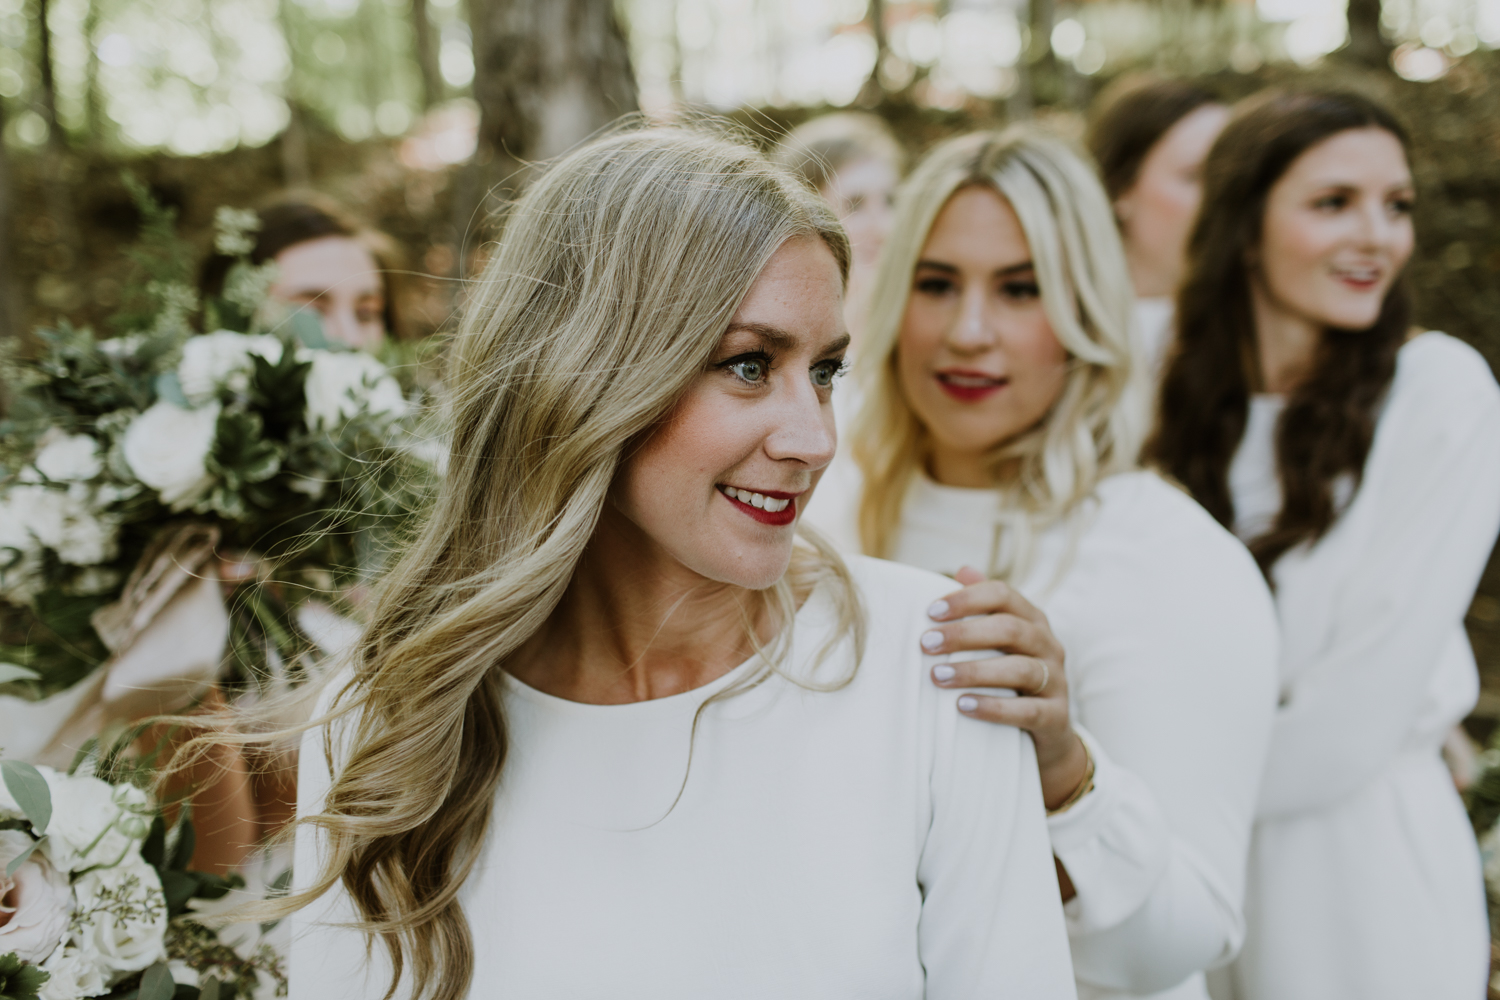 Reds lips on bridesmaid in white